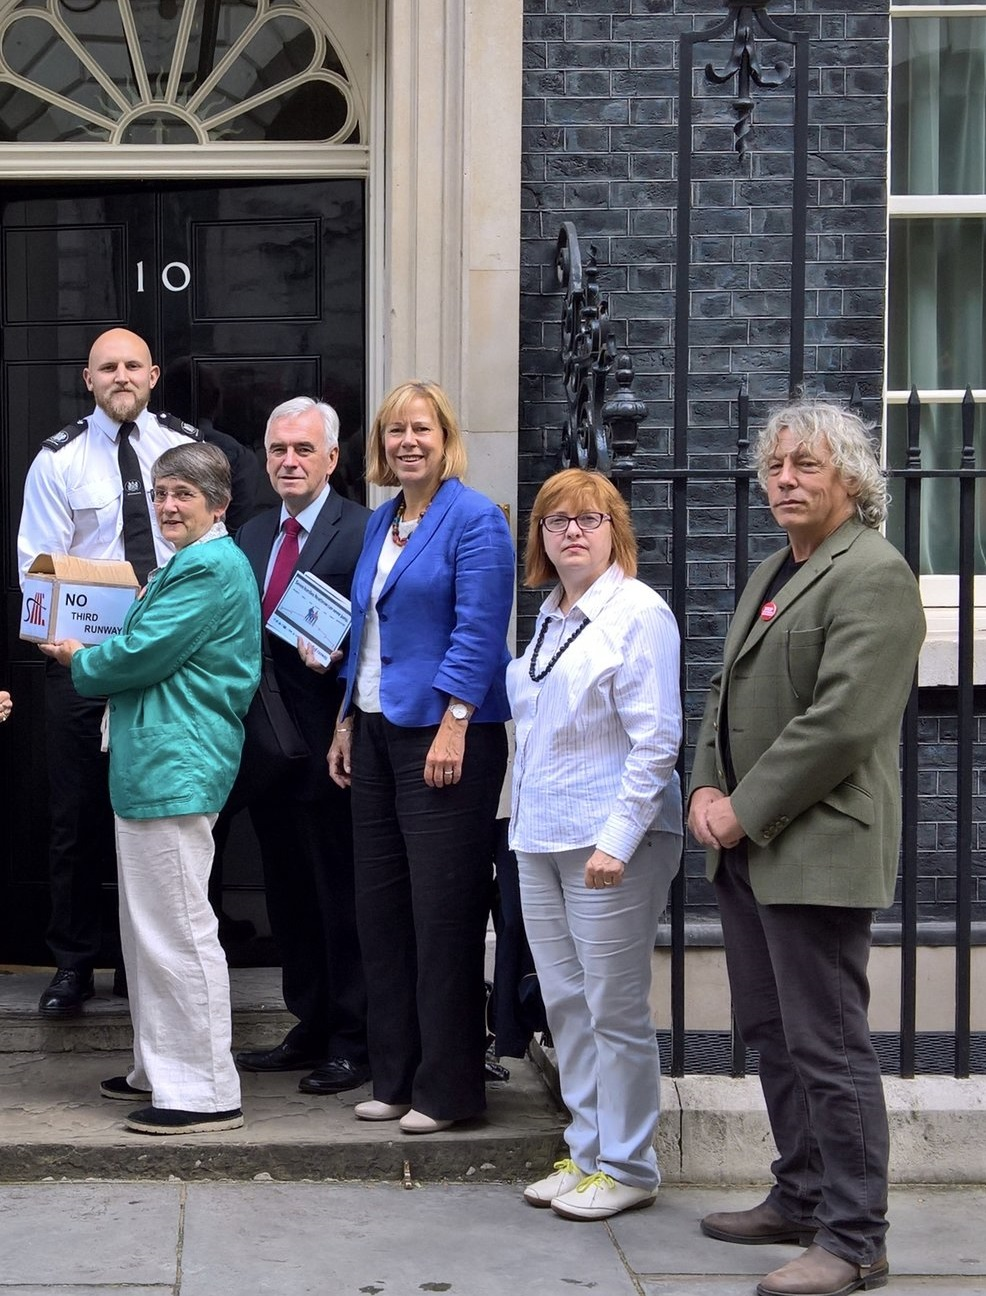 John McDonnell MP (holding cards) and Ruth Cadbury MP (blue jacket) on the steps of No 10 with campaigners and Harmondsworth residents